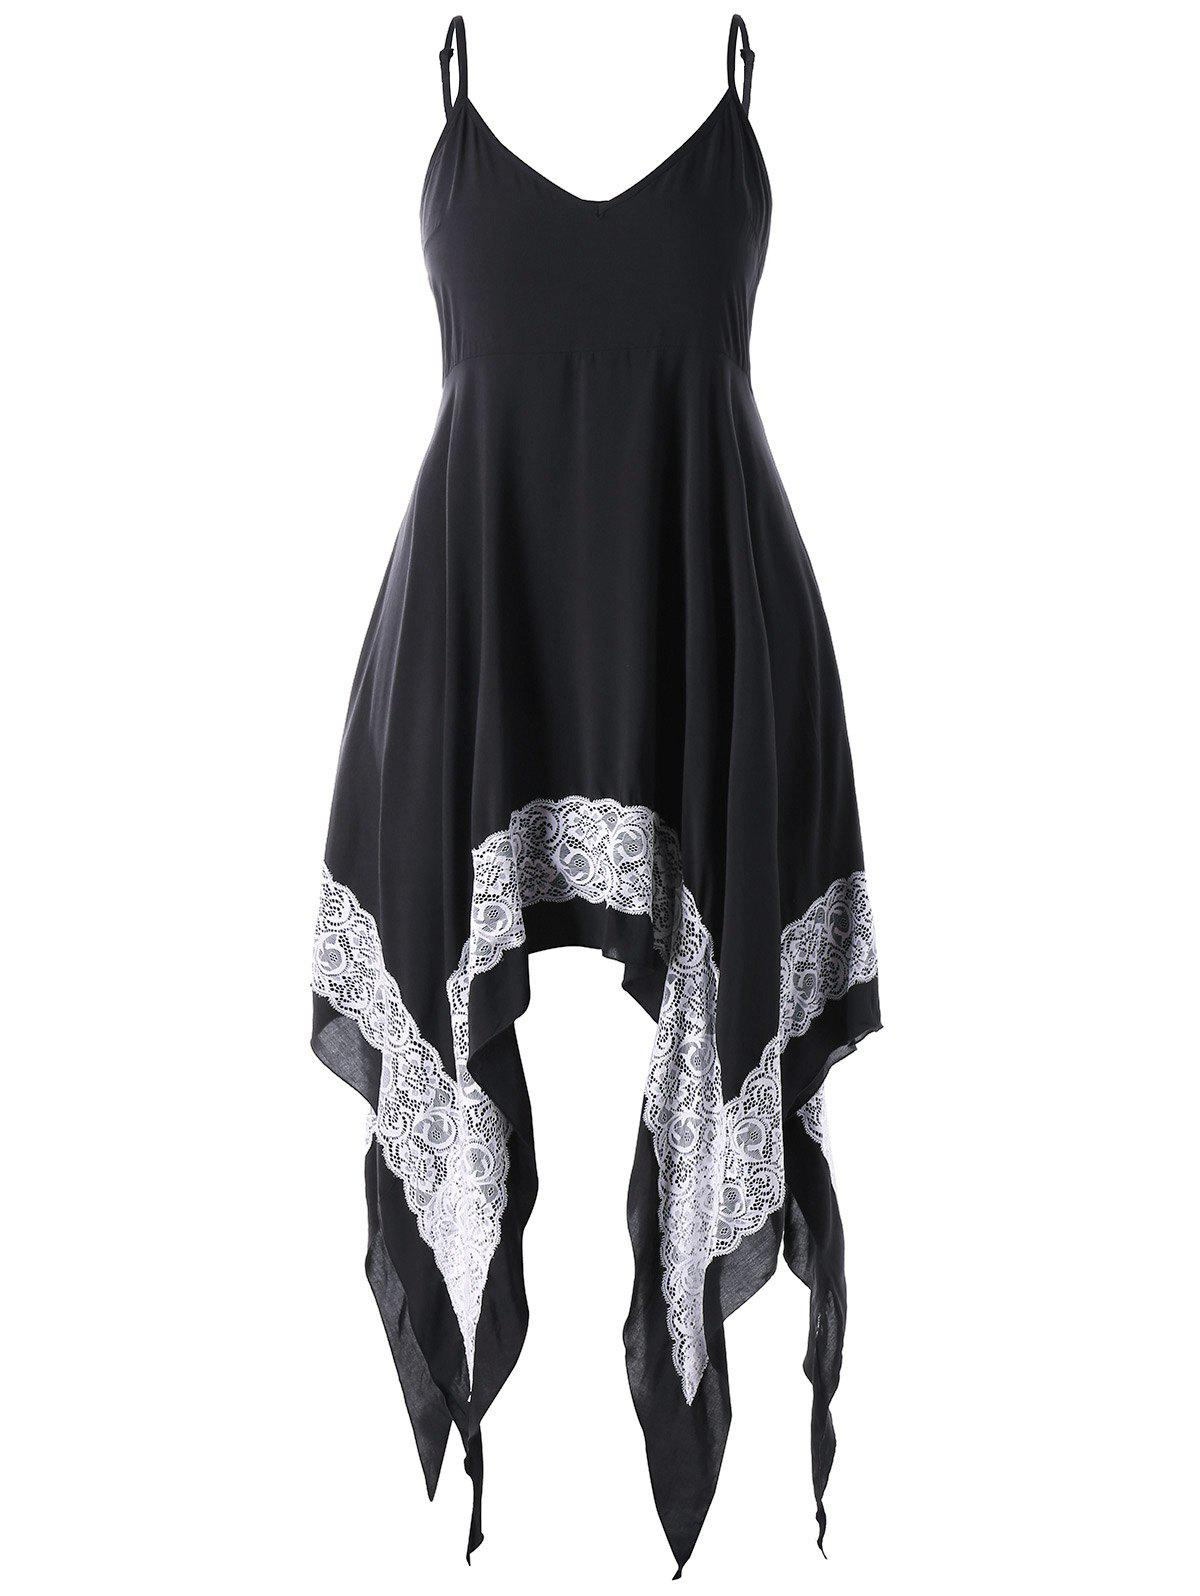 Plus Size Handkerchief Hem Summer Dress - BLACK 3XL